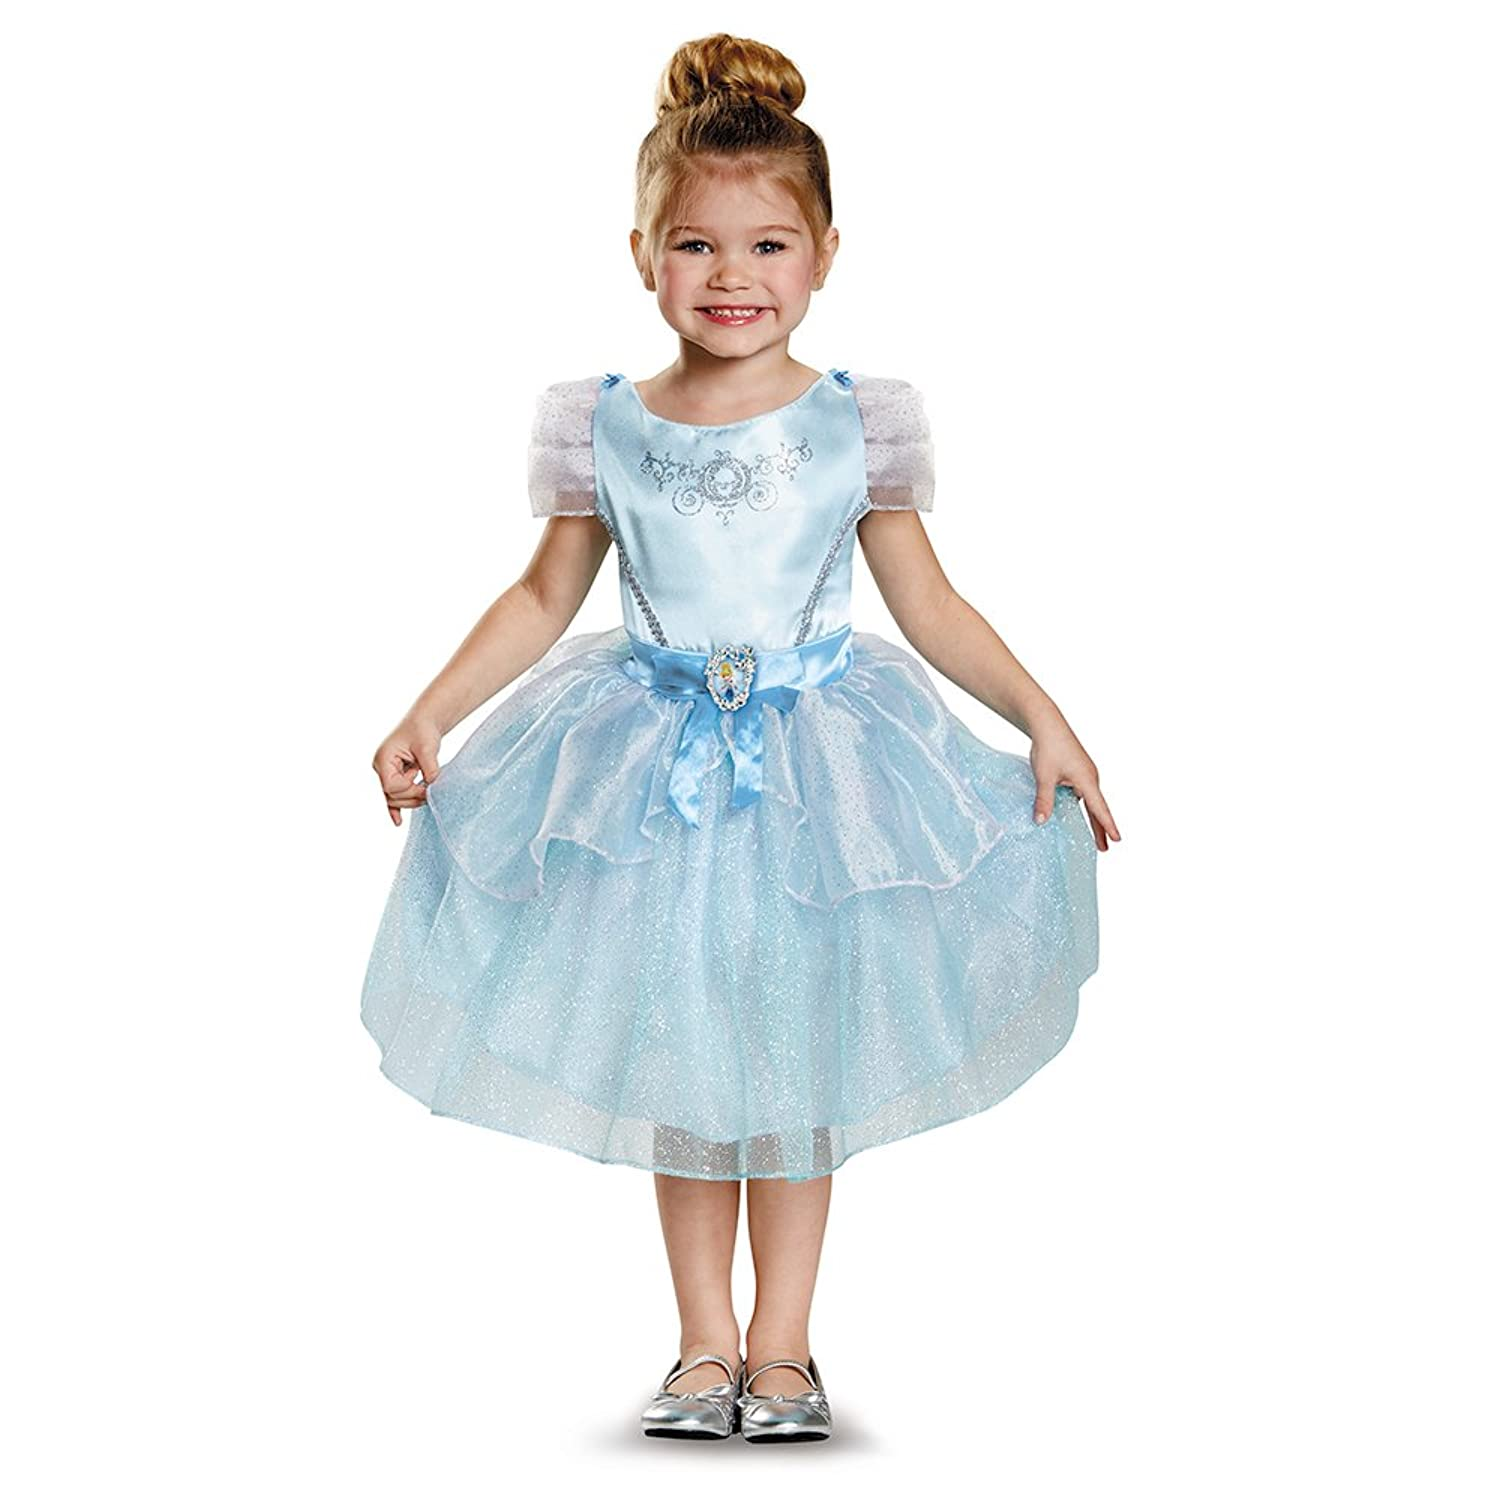 Amazon.com: Disguise Cinderella Classic Toddler Costume: Clothing